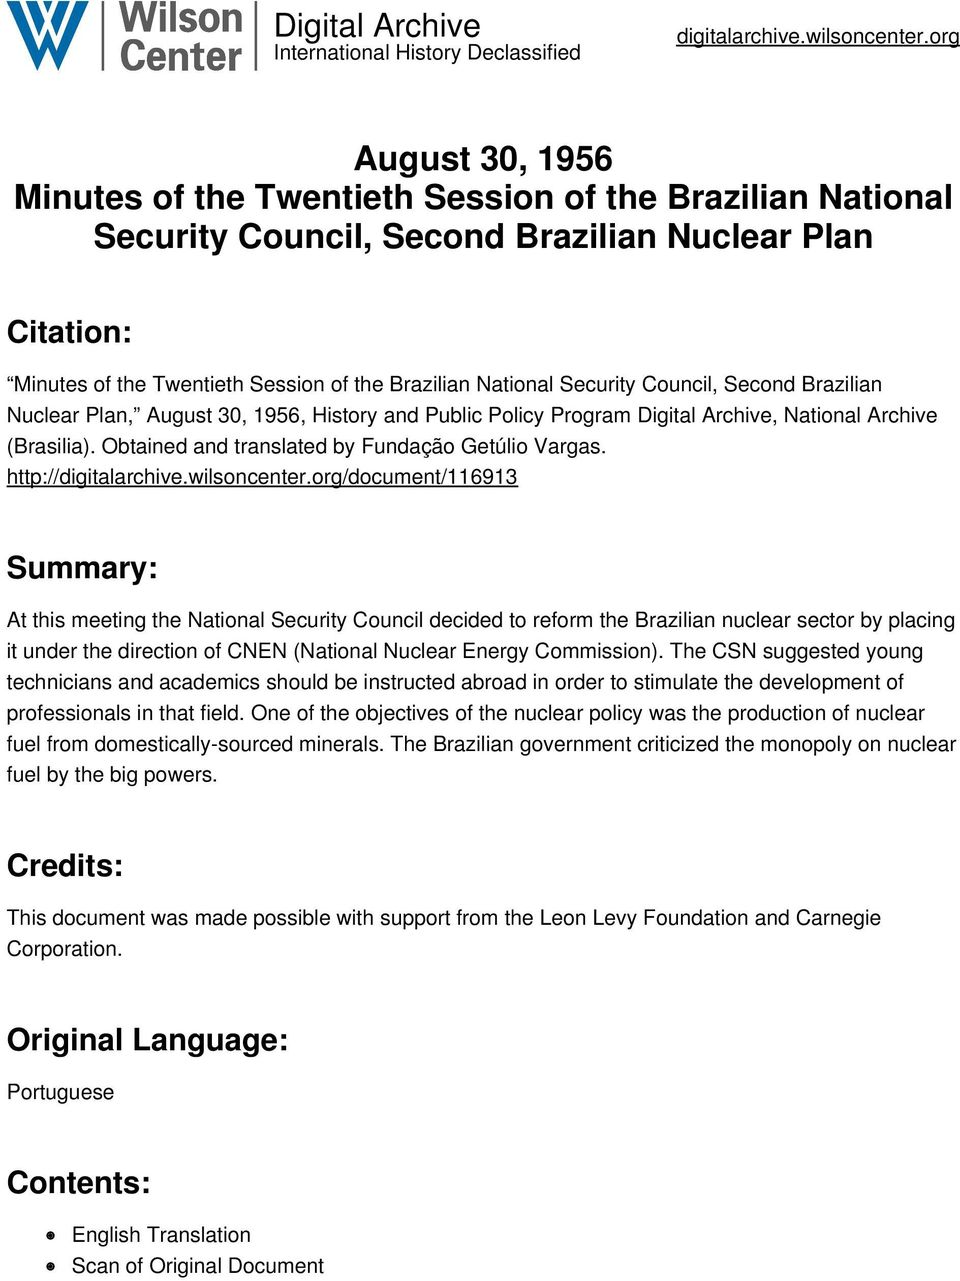 Security Council, Second Brazilian Nuclear Plan, August 30, 1956, History and Public Policy Program Digital Archive, National Archive (Brasilia). Obtained and translated by Fundação Getúlio Vargas.